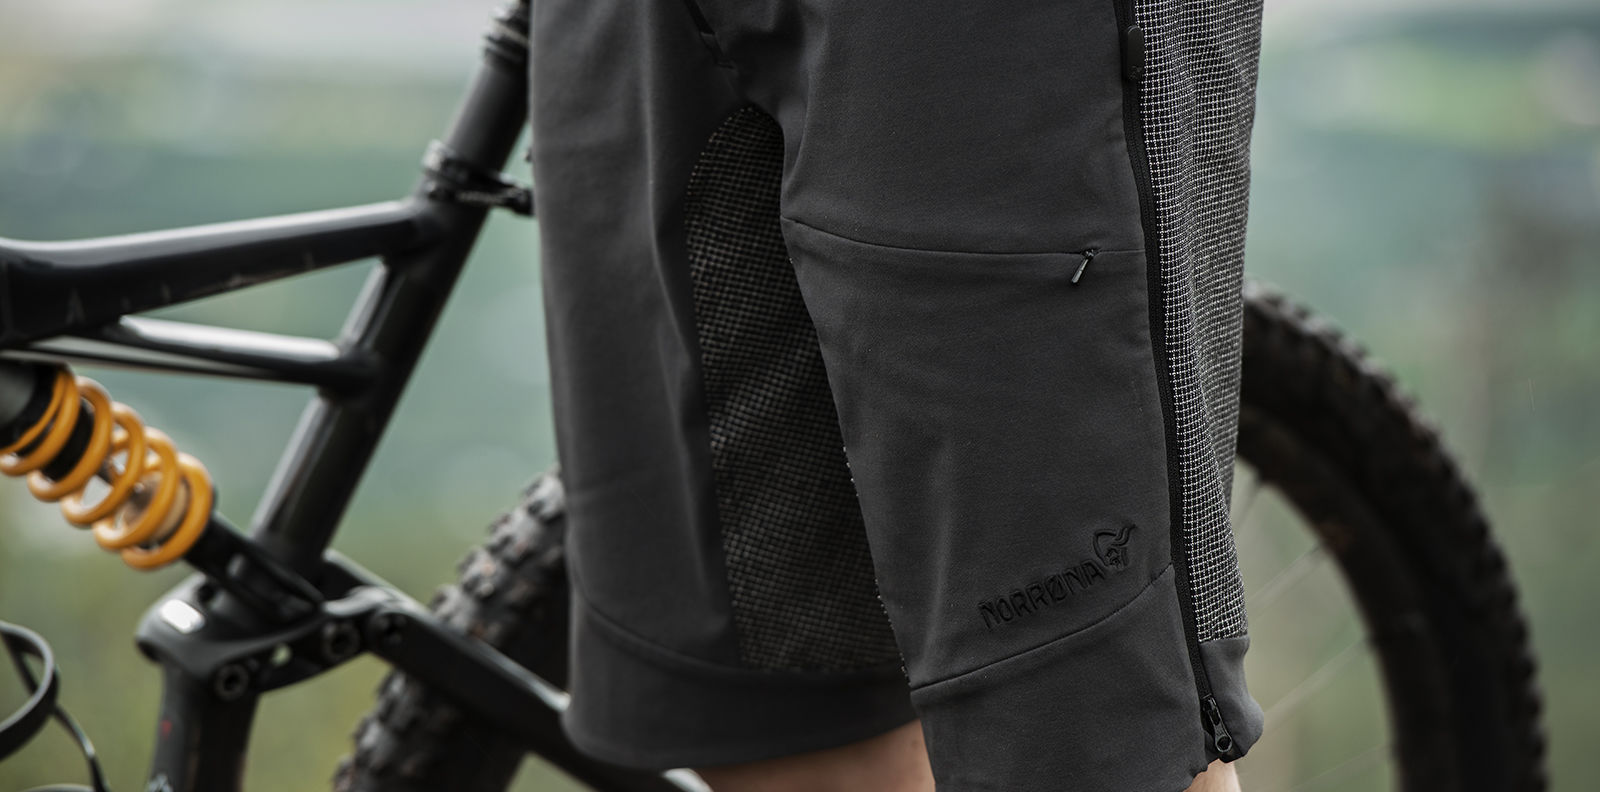 Skibotn flex1 bike shorts